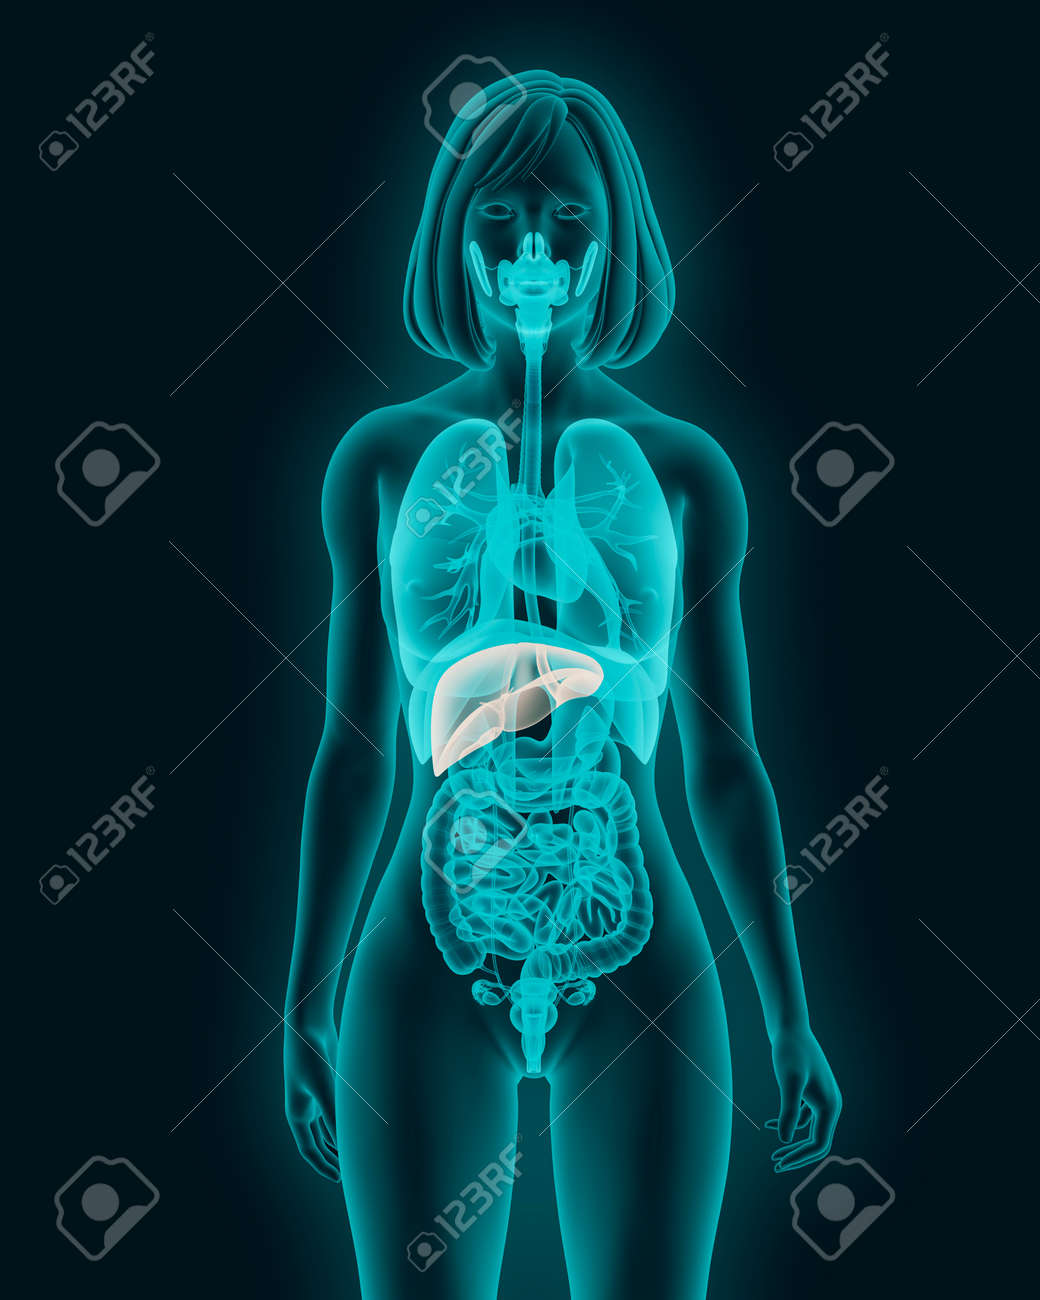 Anatomy Of Woman Liver With Digestive Organs In X-ray View 3d ...